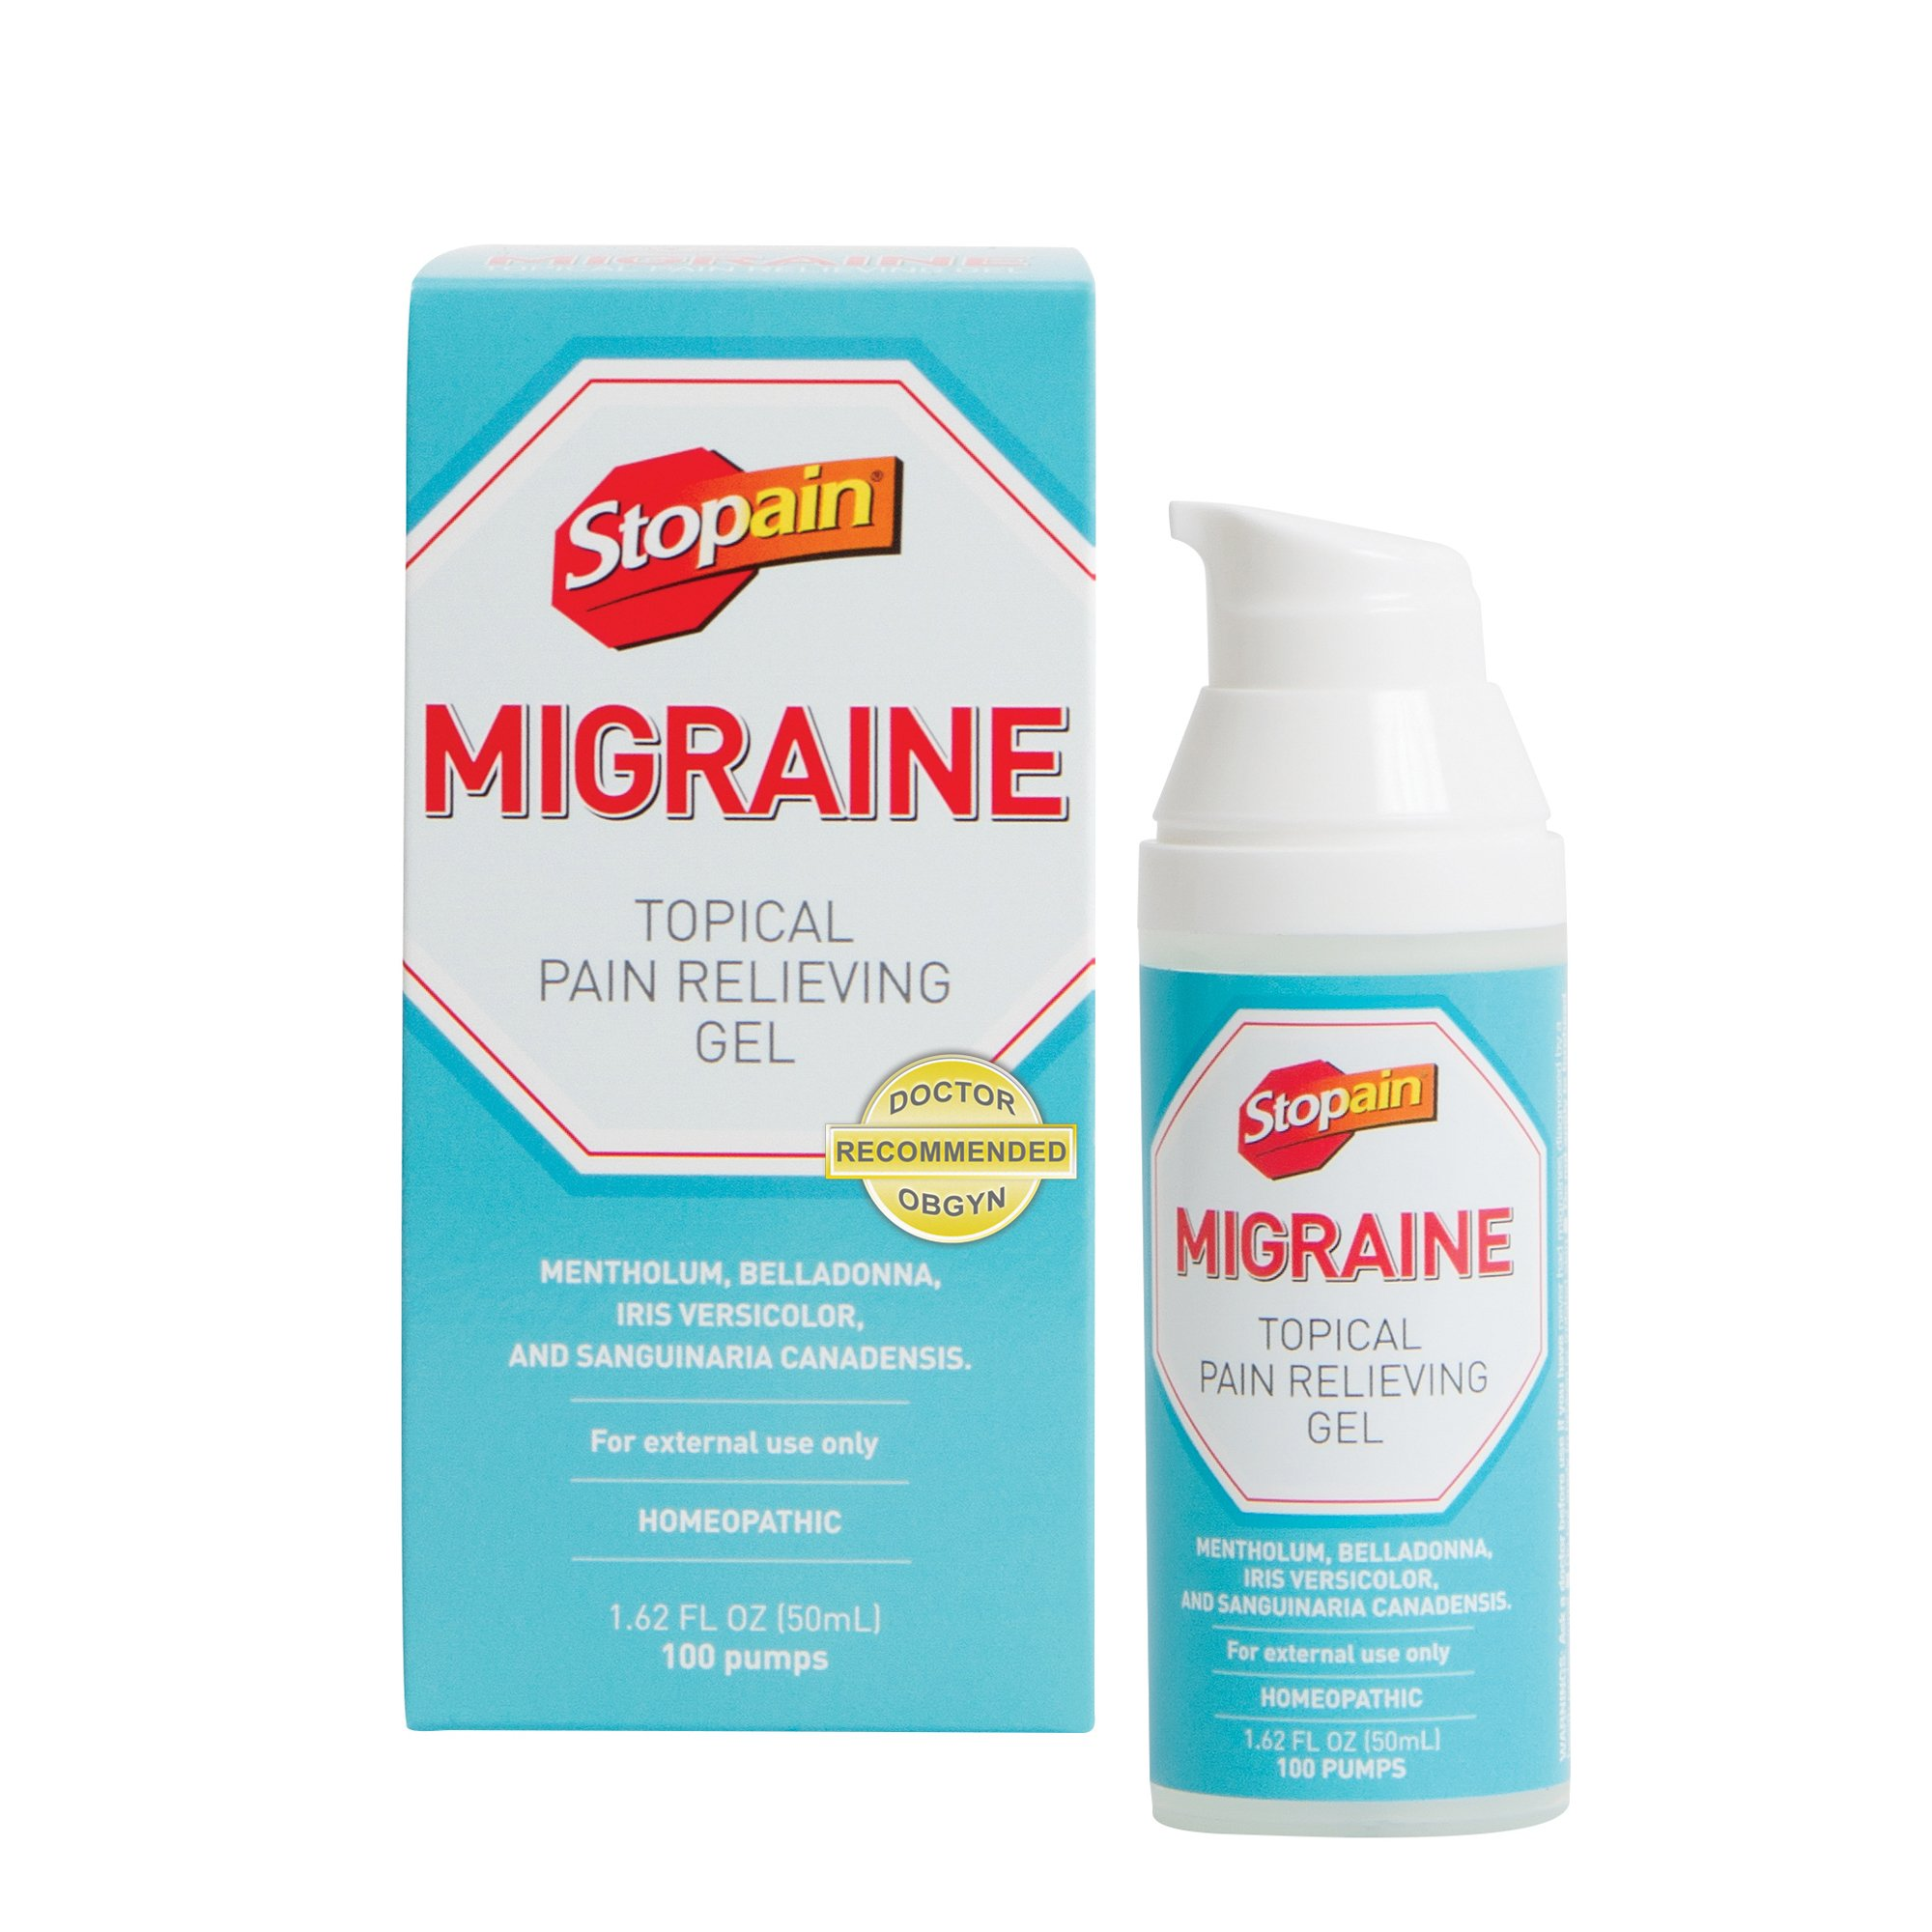 Stopain Migraine Topical Pain Relieving Gel, 1.62 fl. oz., Safe and Effective Migraine Relief, Safe to Use With Other Migraine Medication, Effective At Any Stage of a Migraine, No Known Side Effects